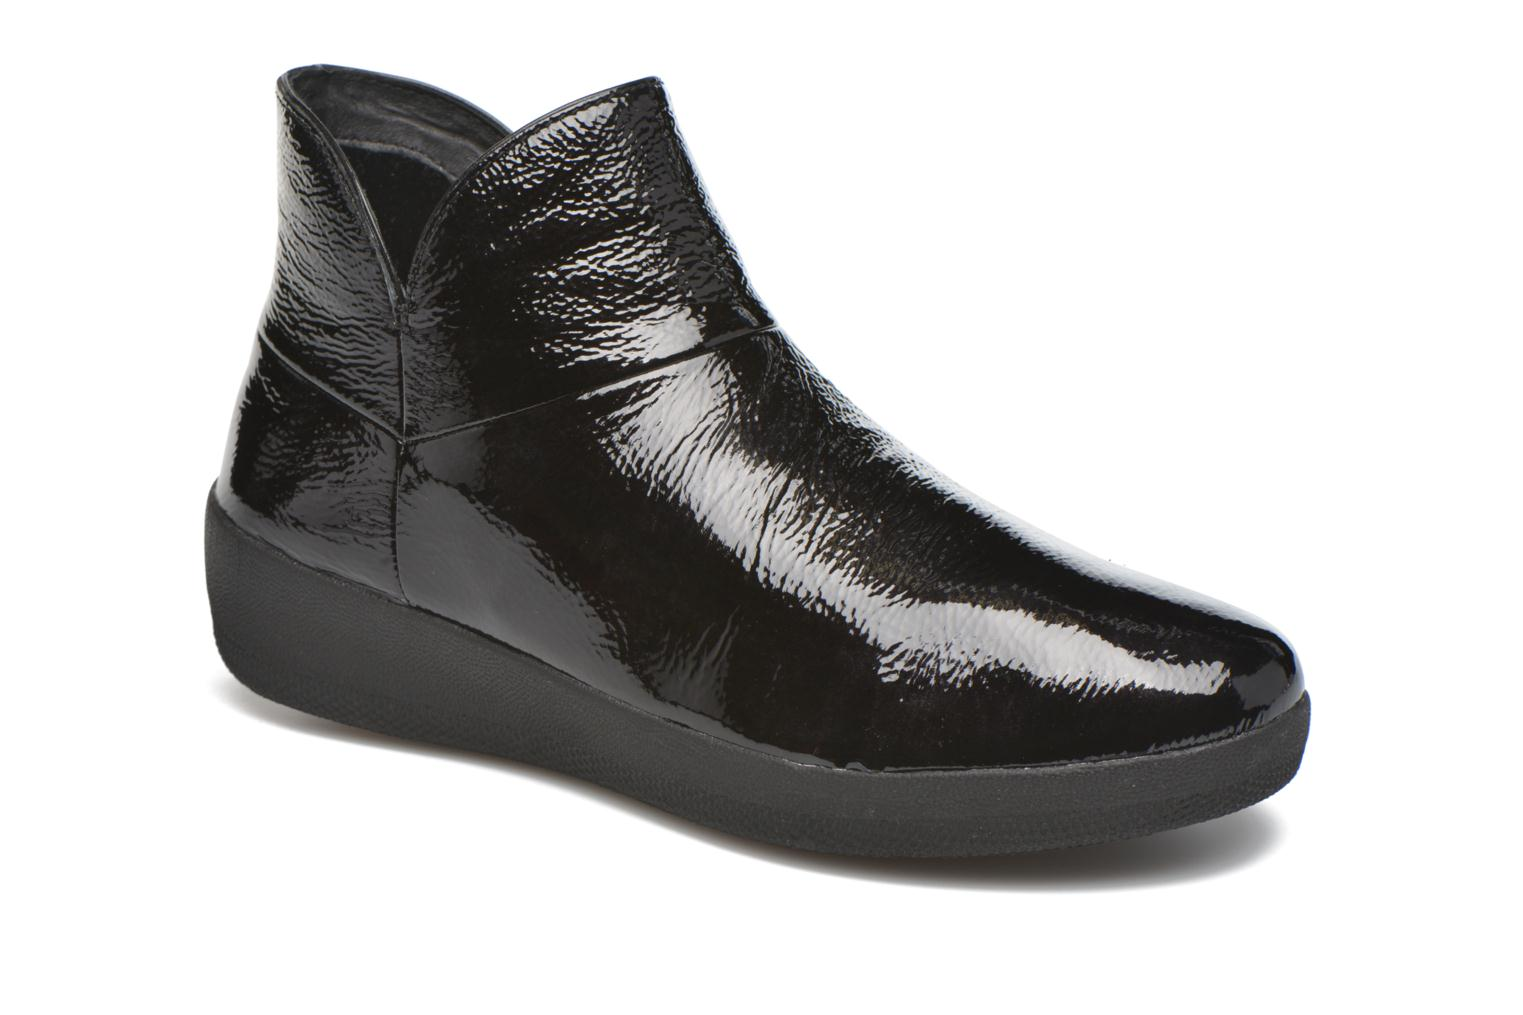 Supermod Leather Ankle Boots Black Patent